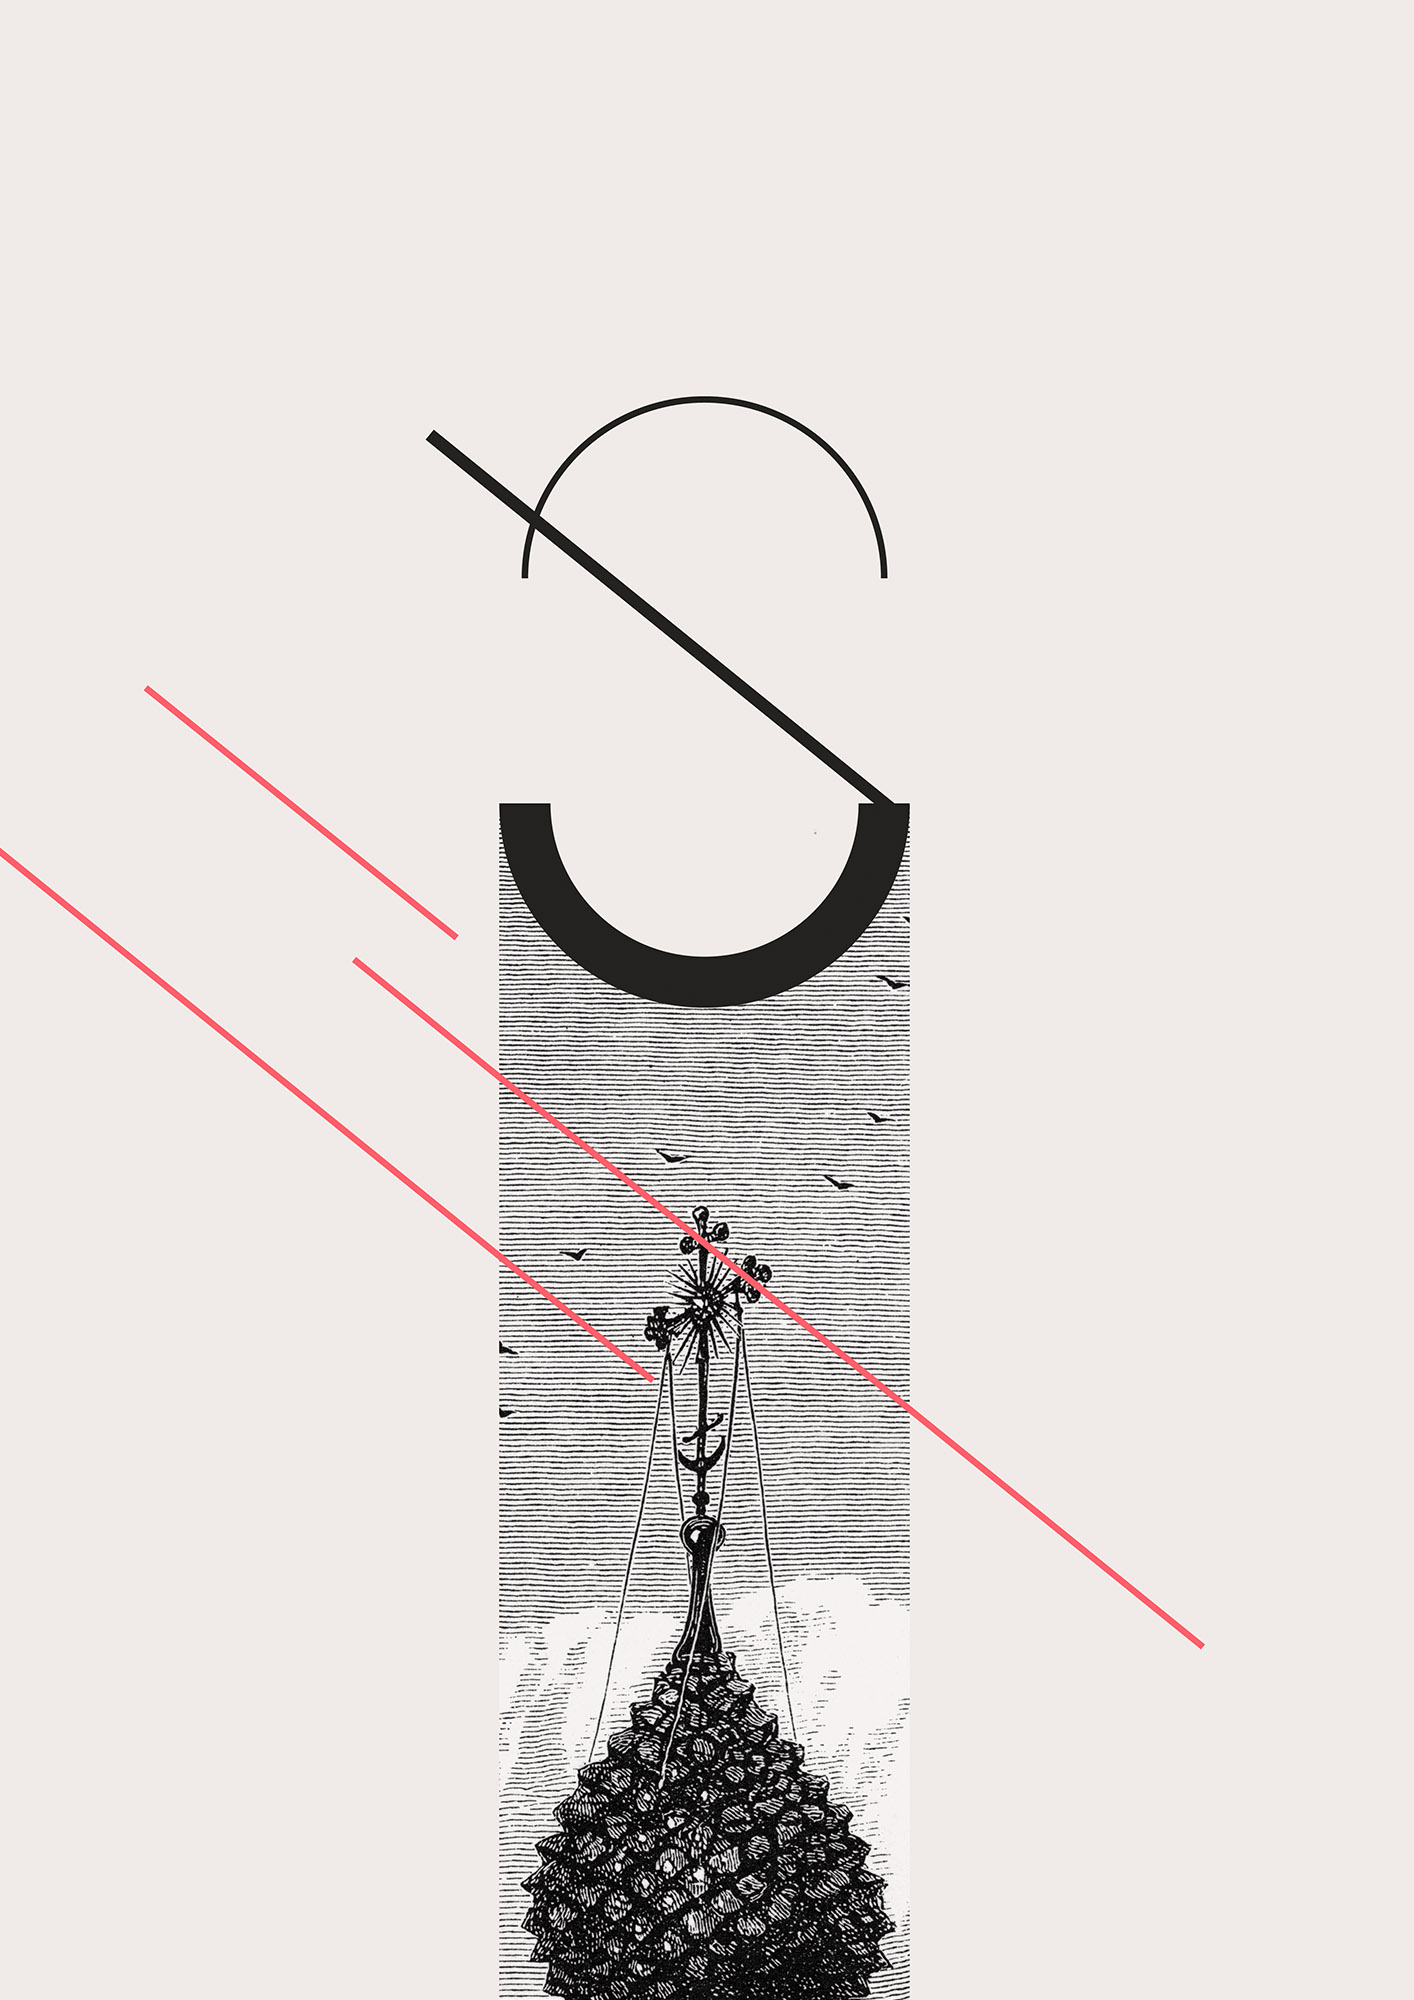 Typography mixed with graphic and old etching visuals.